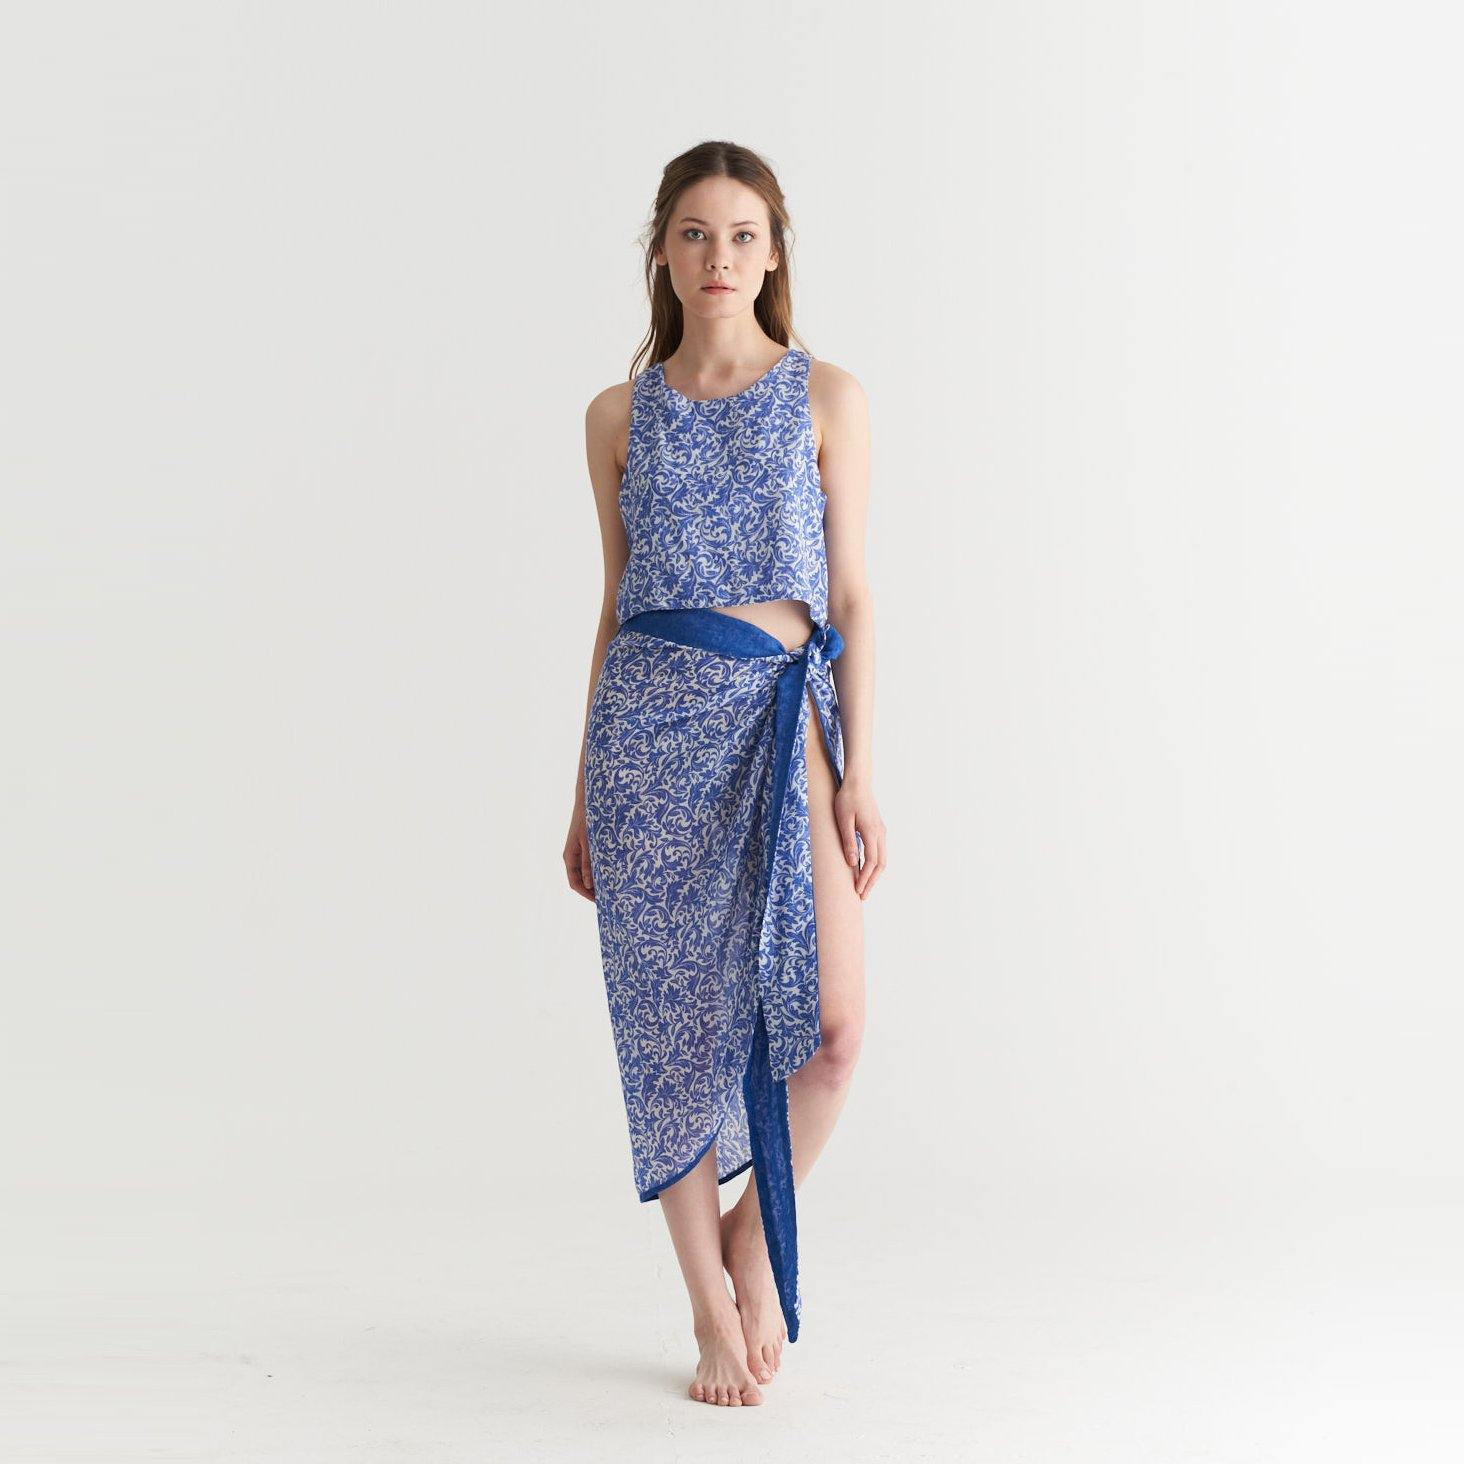 PAREO - CROP TOP DAMASK COBALT BLUE